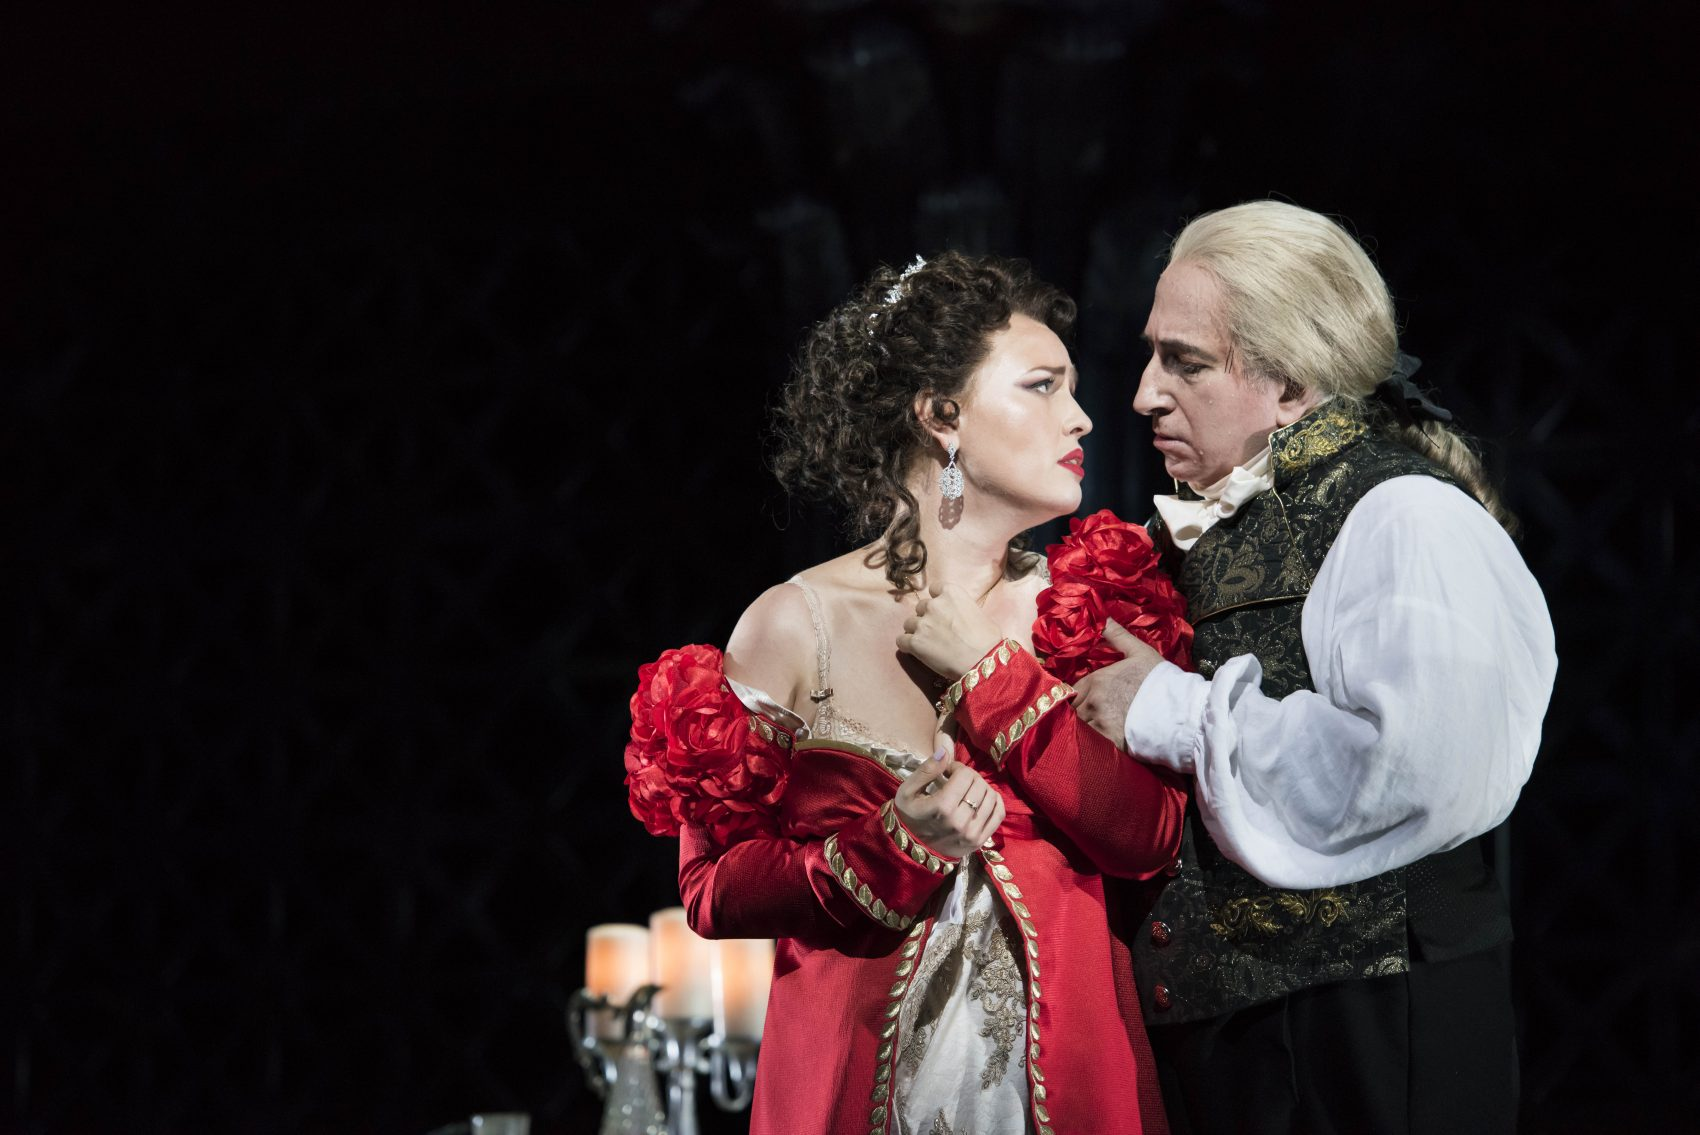 "Tosca, portrayed by Elena Stikhina, submits to Scarpia, played by Daniel Sutin, to save the life of her true love in the Boston Lyric Opera production of ""Tosca."" (Courtesy Liza Voll/Boston Lyric Opera)"